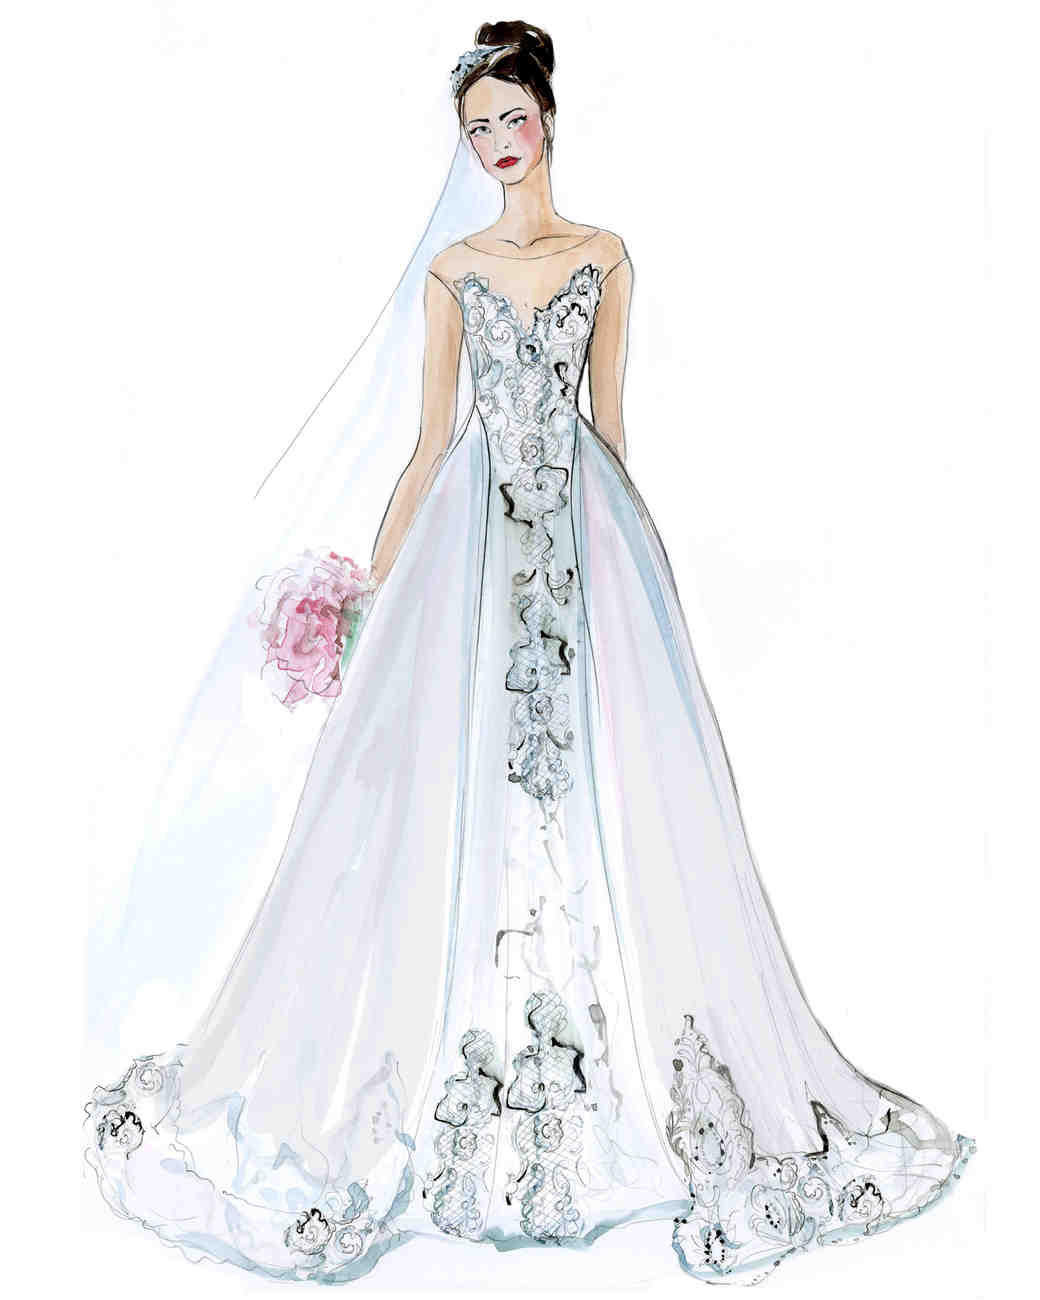 olvis wedding dress sketch